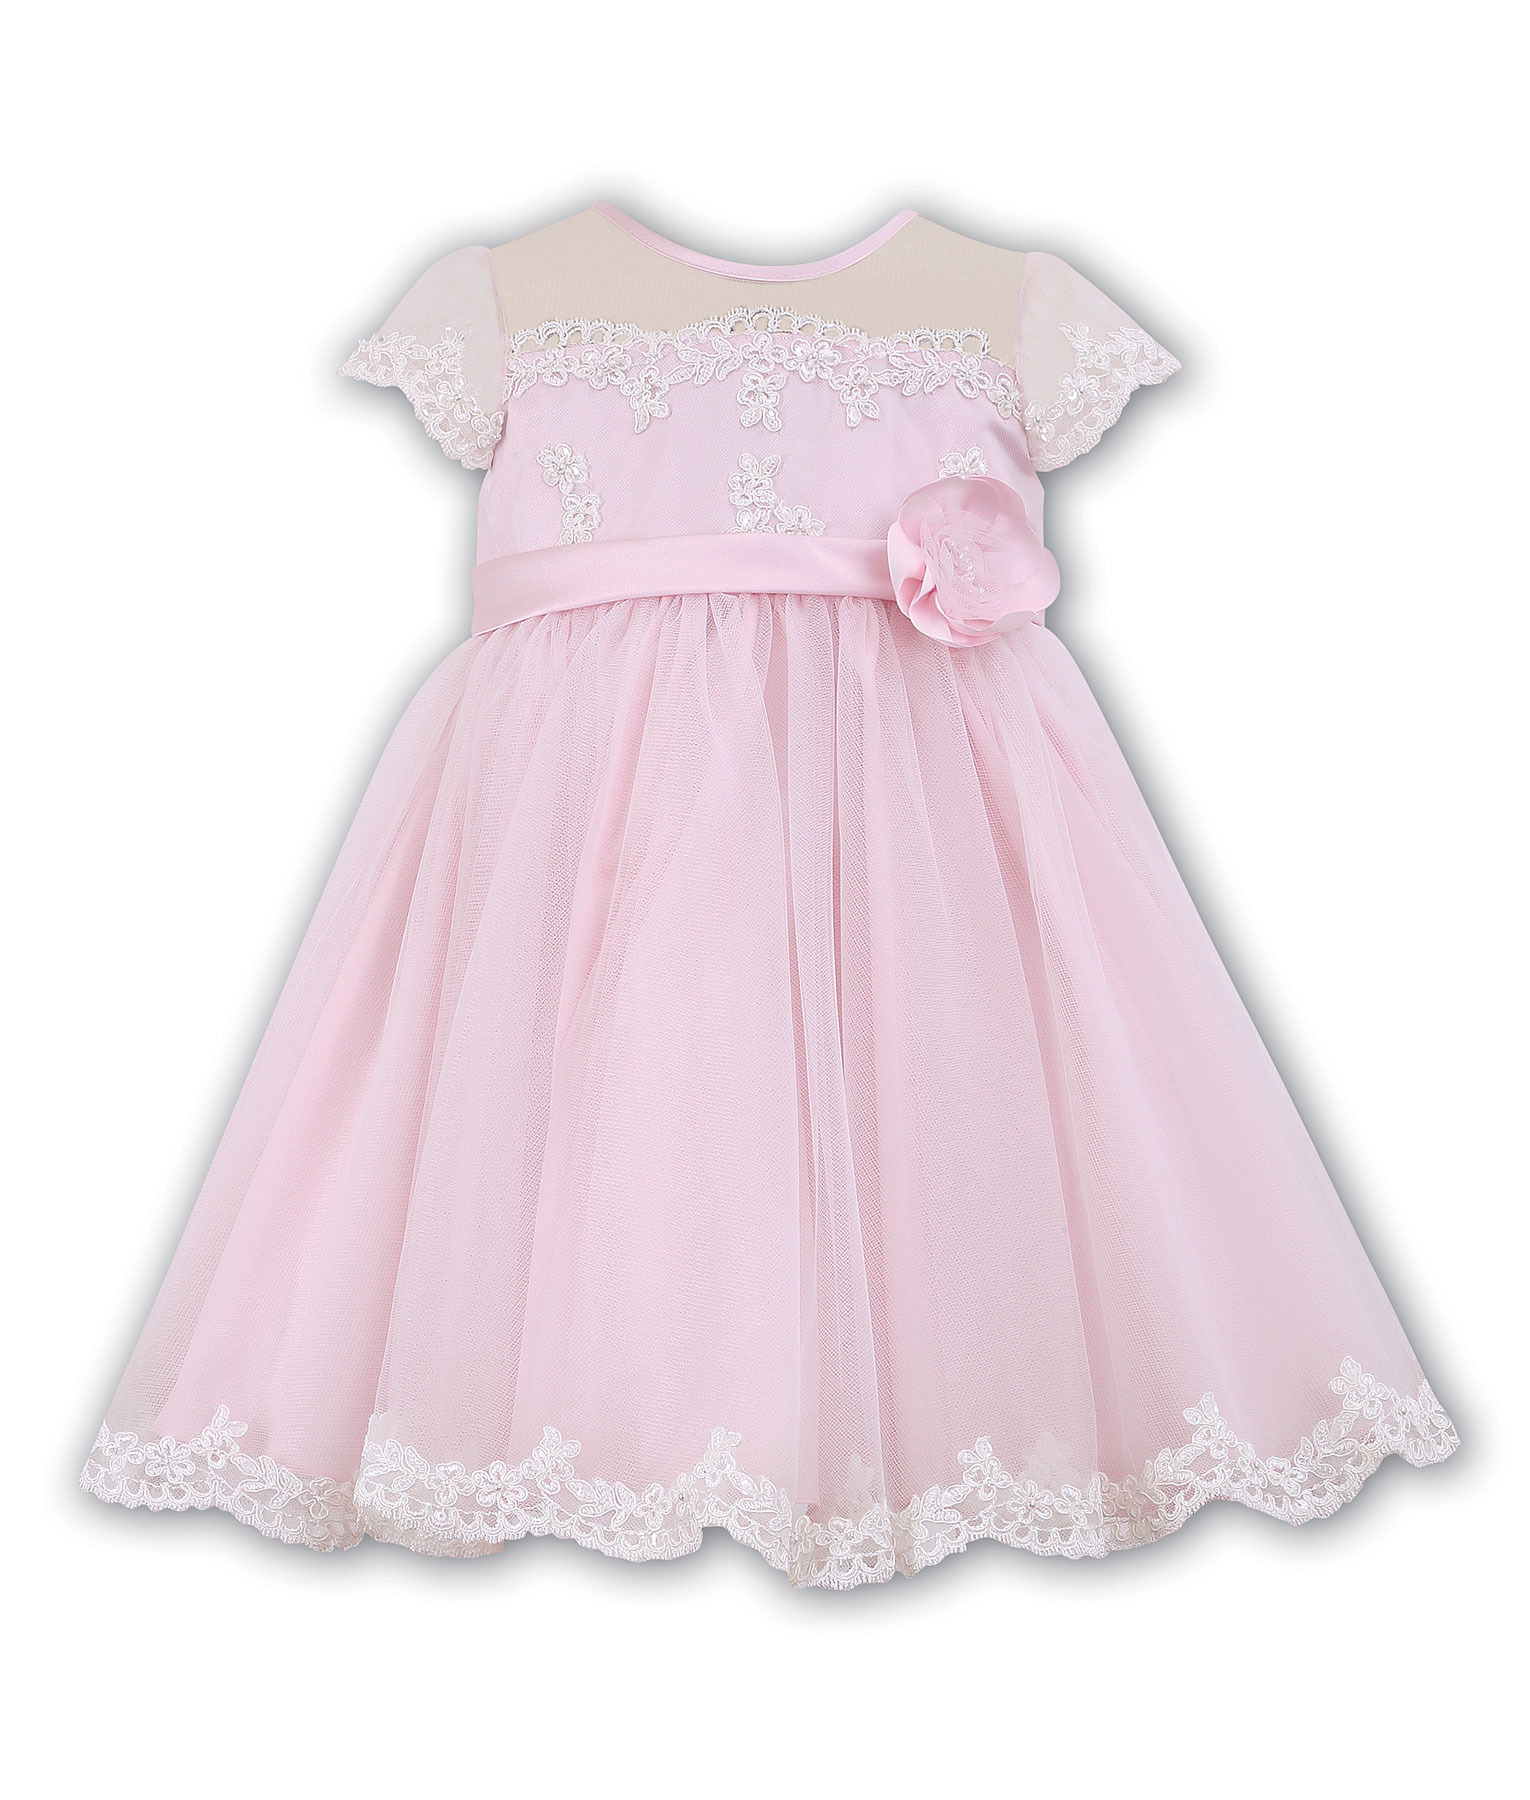 Classic Light Pink Baby Toddler Boutique Pettiskirt for Babies. $ Hot Pink Petti Lace Romper for Newborns Baby Toddler. $ In addition to baby boutique clothing, tutu dresses, baby lace rompers, ruffled bloomers, and pettiskirts, we have a full line of accessories to complement each outfit!